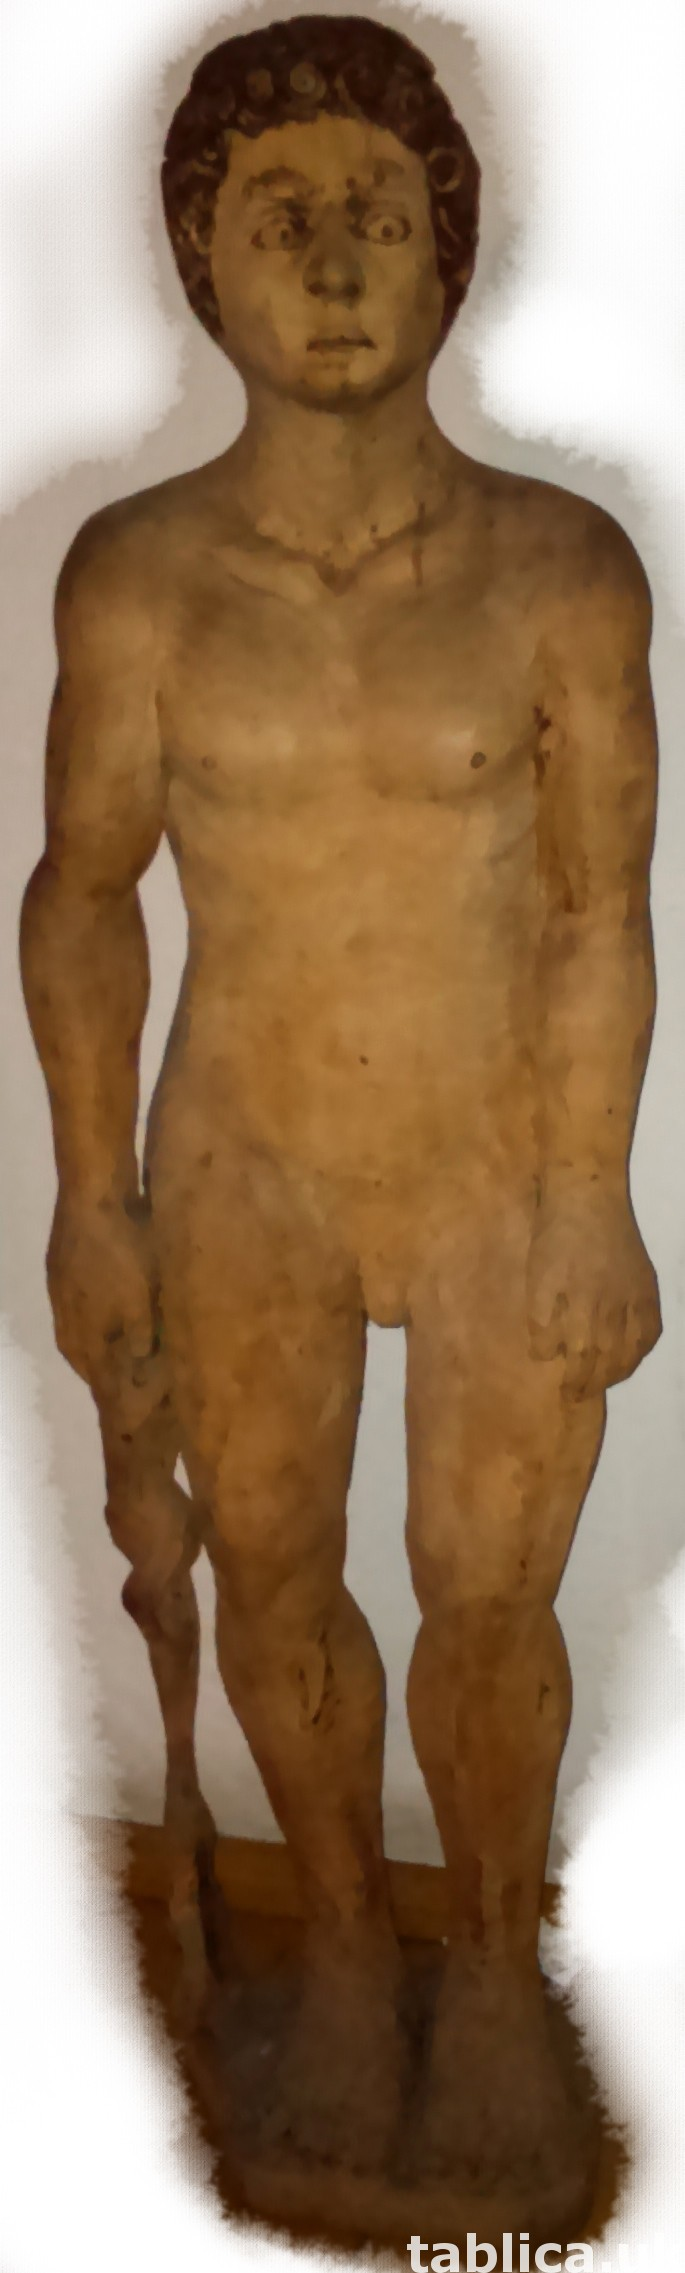 For Sale: Sculpture: The Looking Man - Solid Wood !!! 1